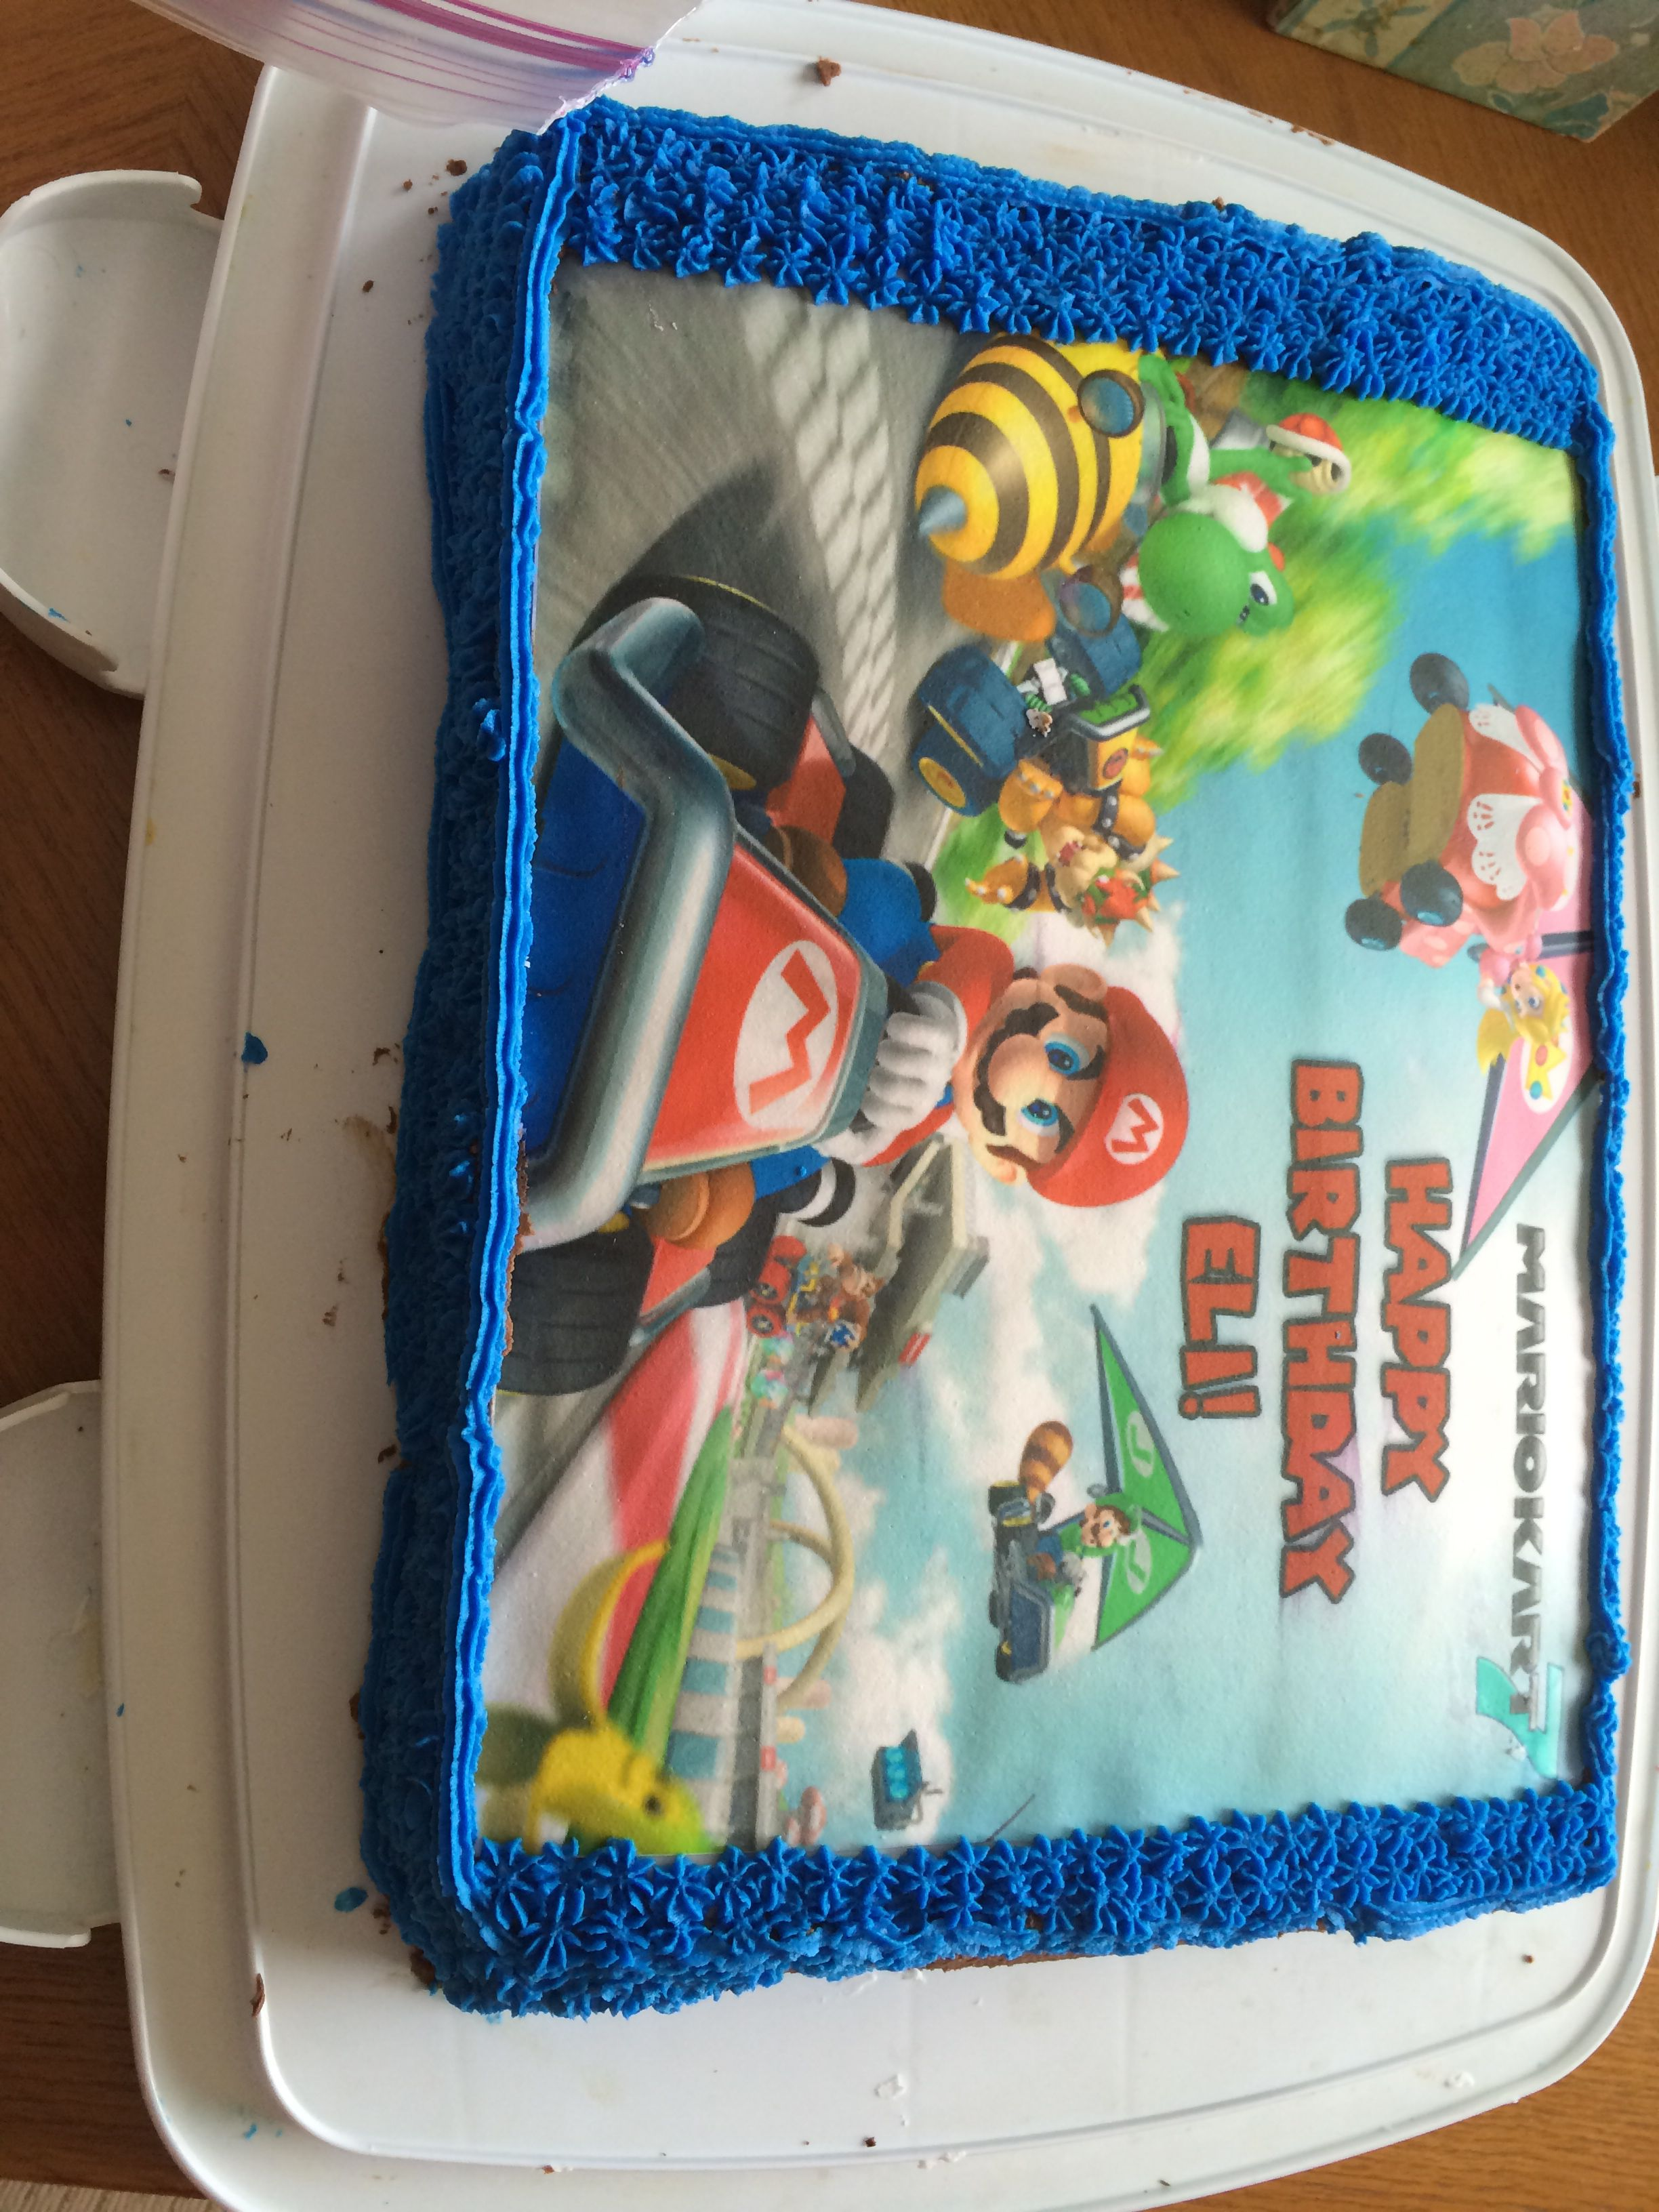 Just made this cake for my son lunch box cake made